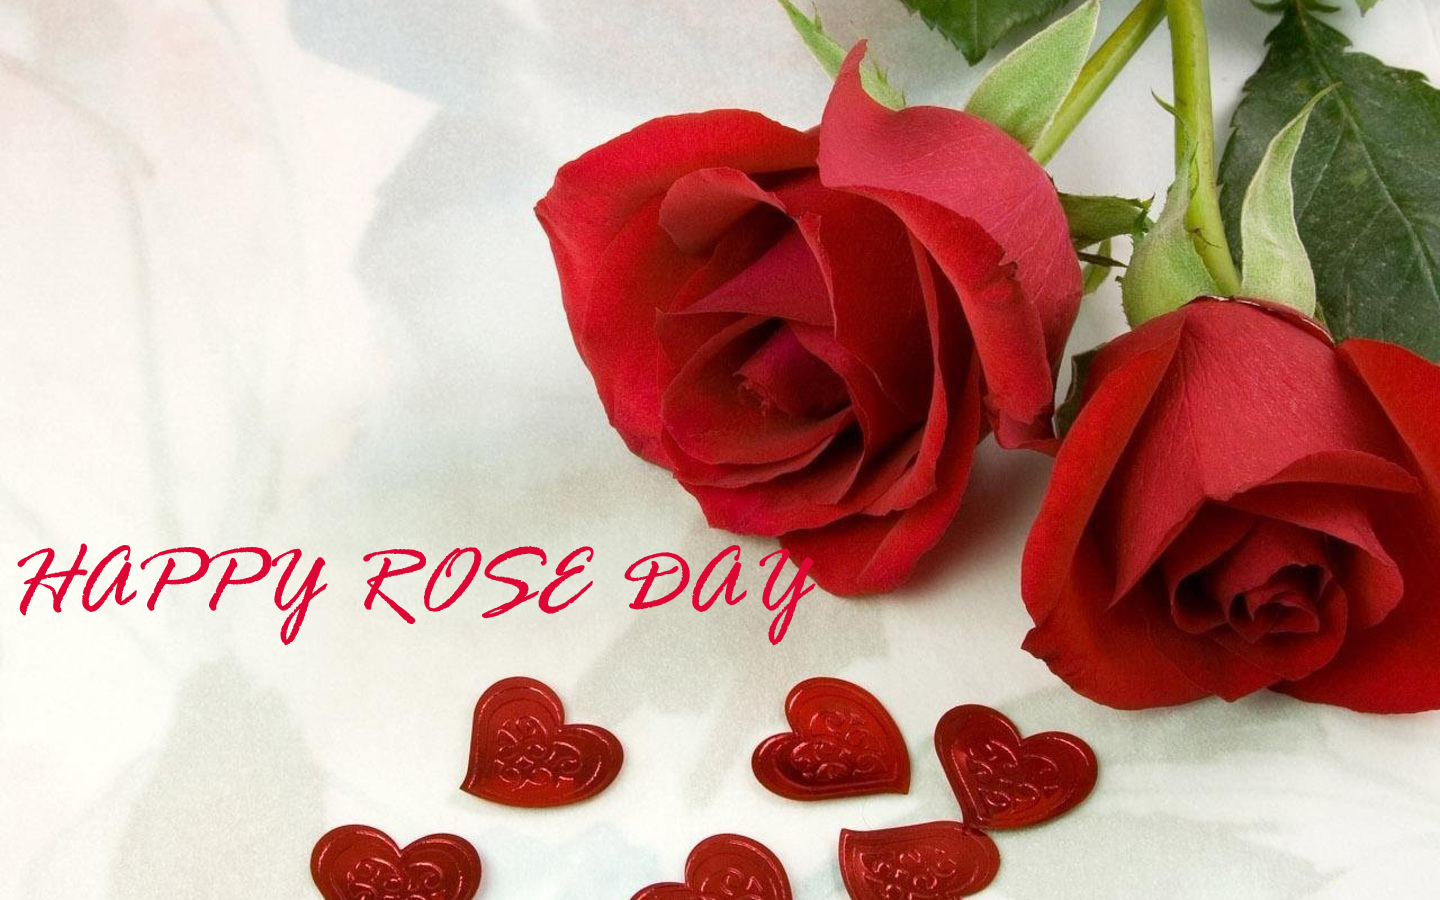 Rose-day-whatsapp-status